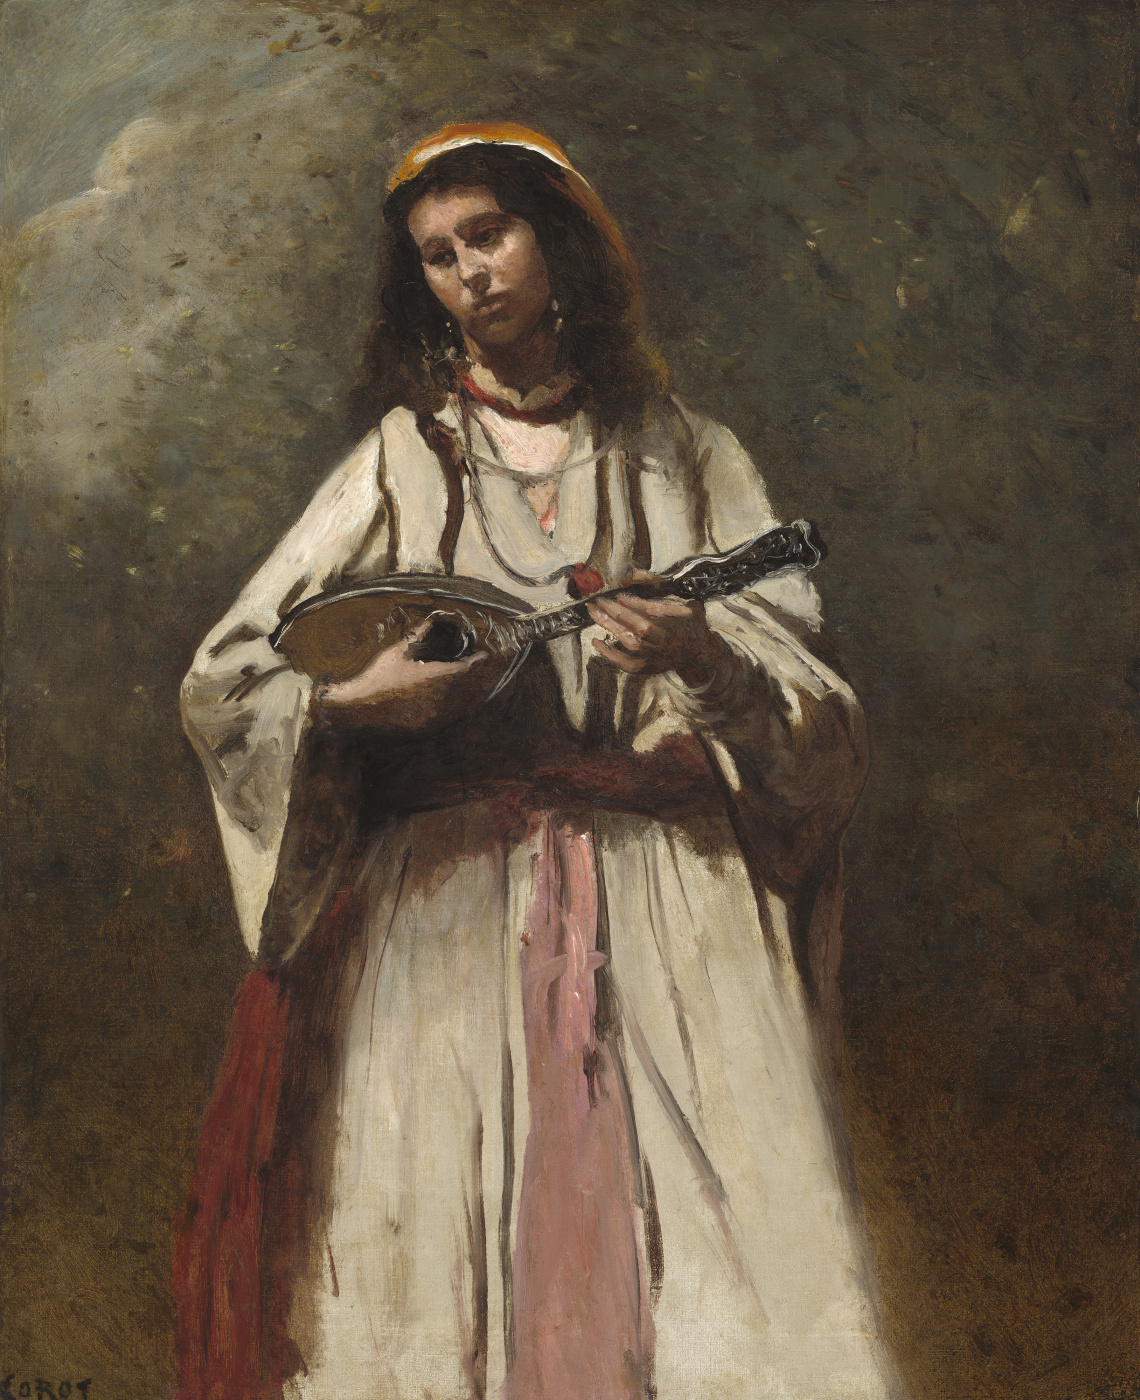 Gypsy with mandolin by Camille Corot: History, Analysis & Facts